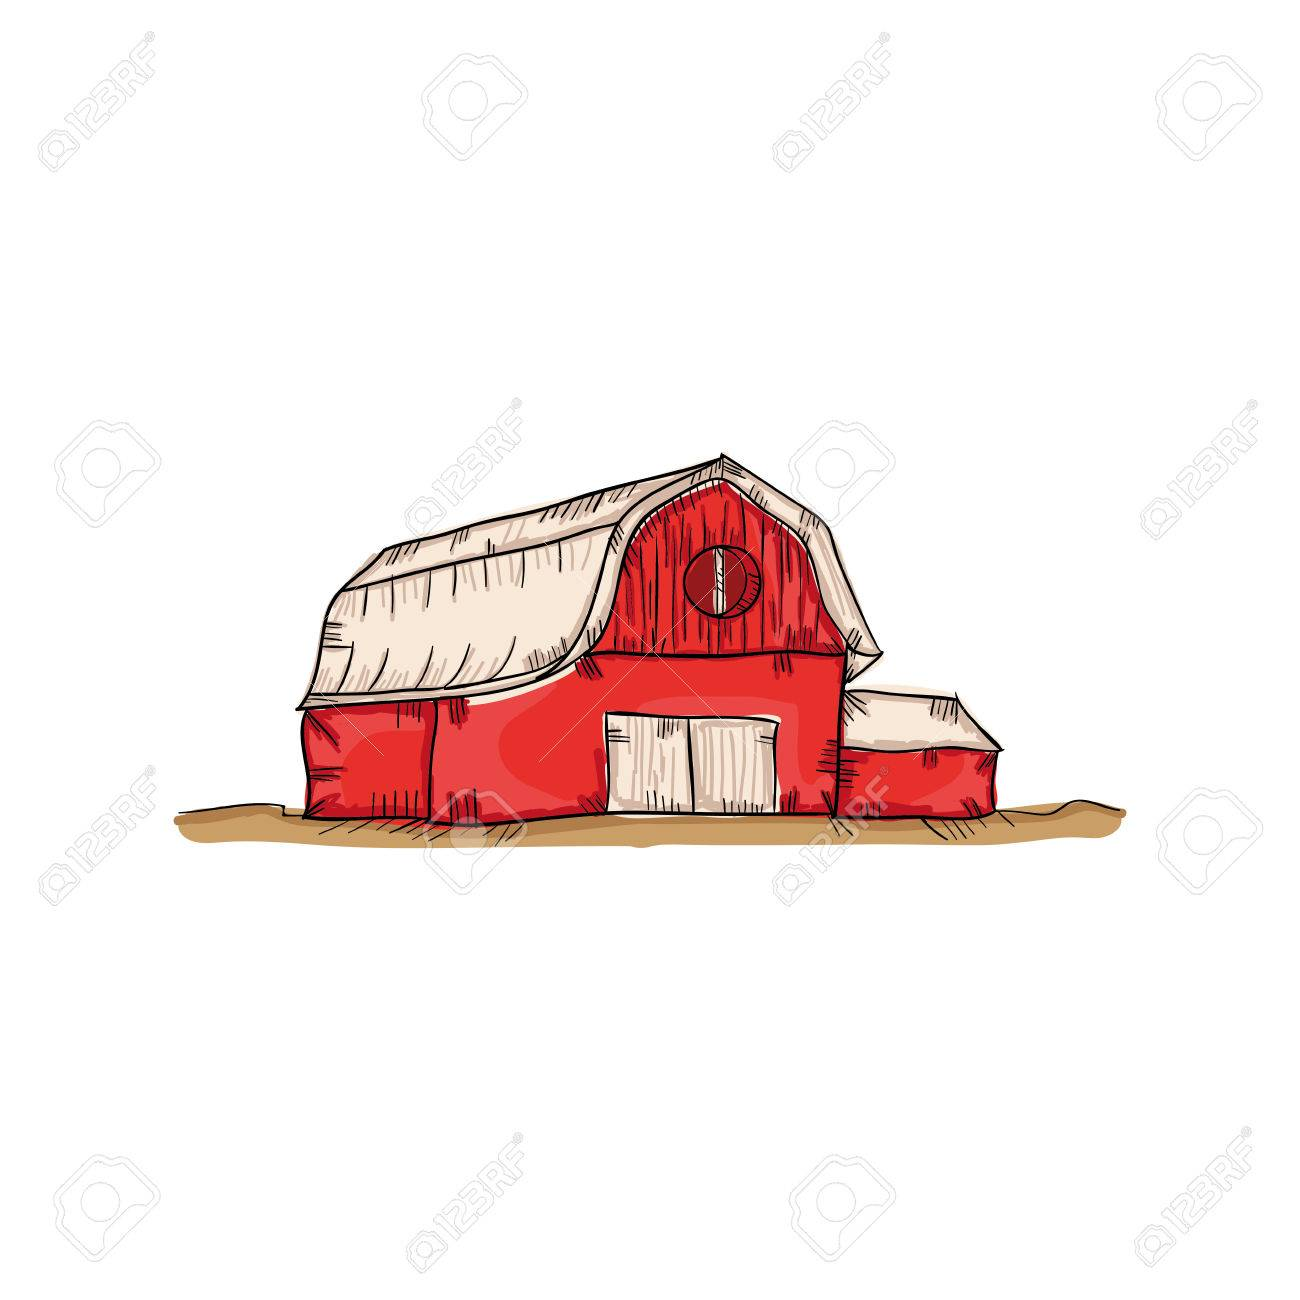 Red Farm Barn Building Drawn Design Vector Illustration Stock